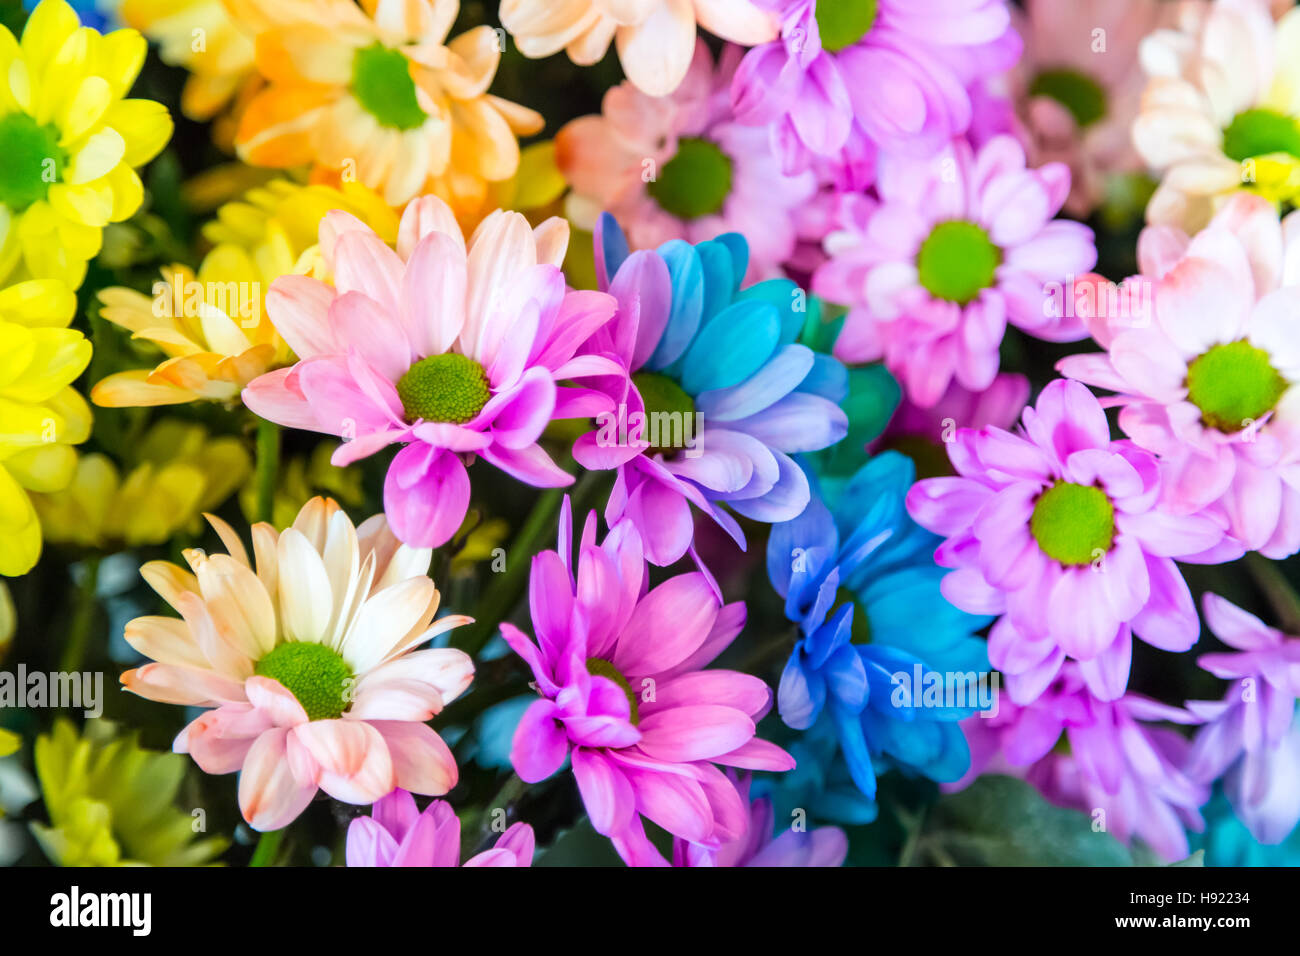 Chrysanthemum Rainbow Flower Stock Photo: 126050040 - Alamy